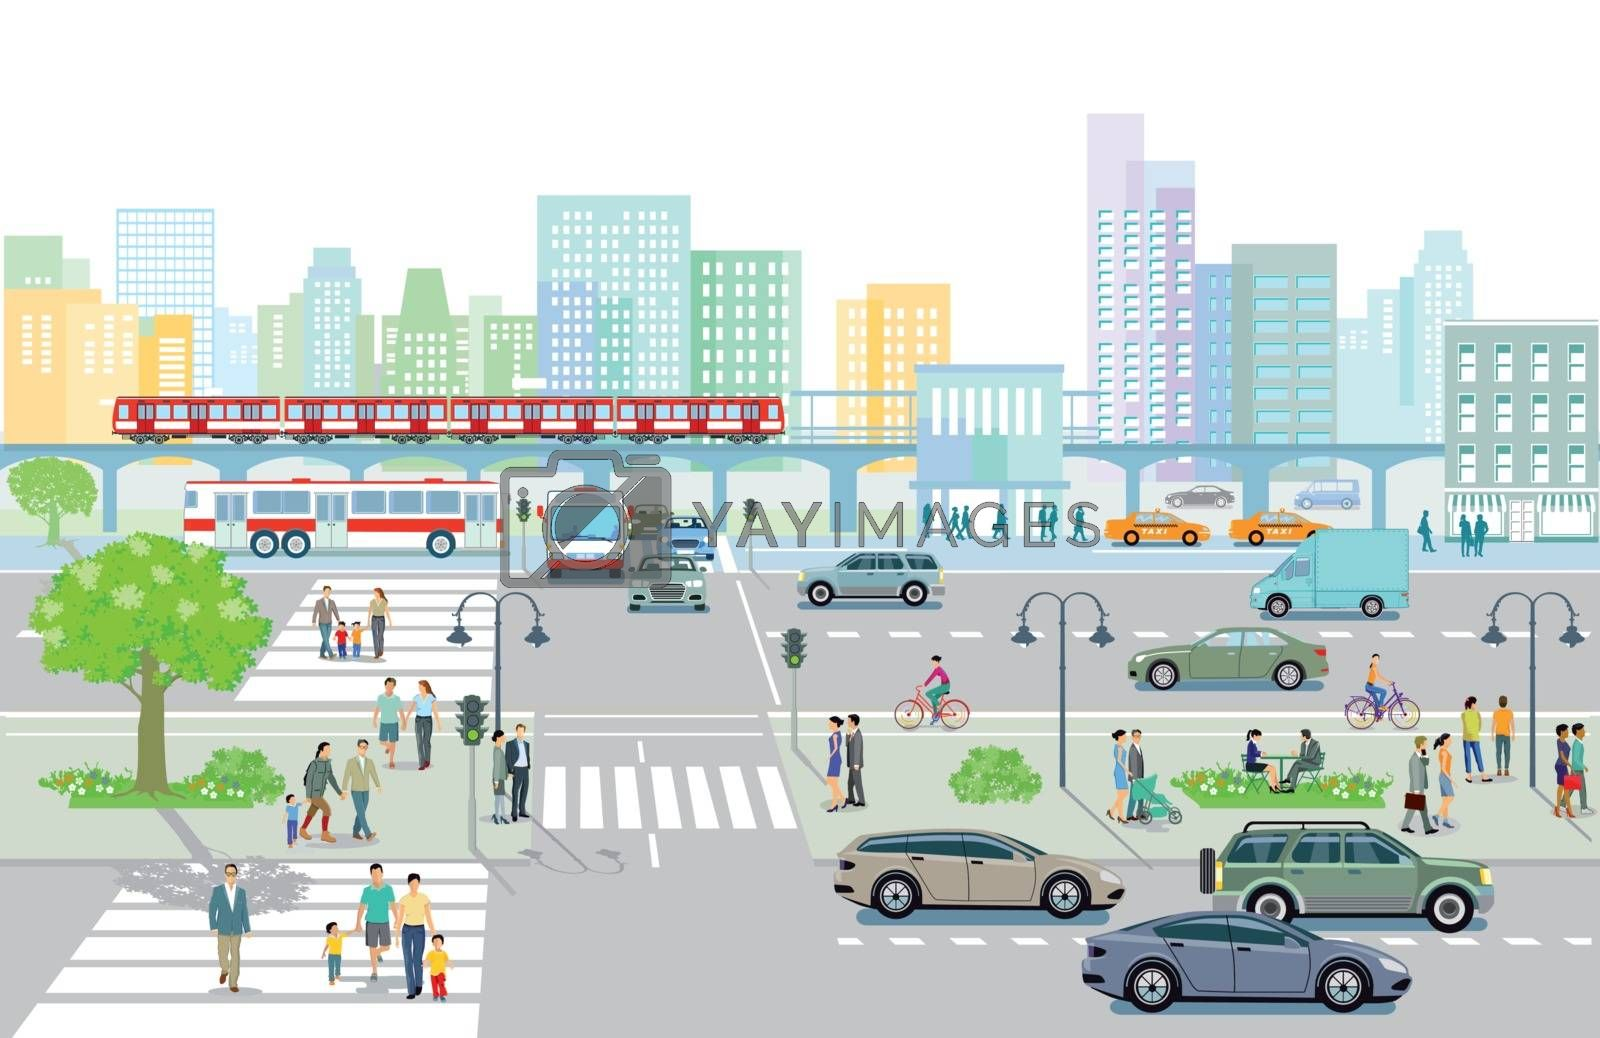 City with traffic and pedestrians on the sidewalk